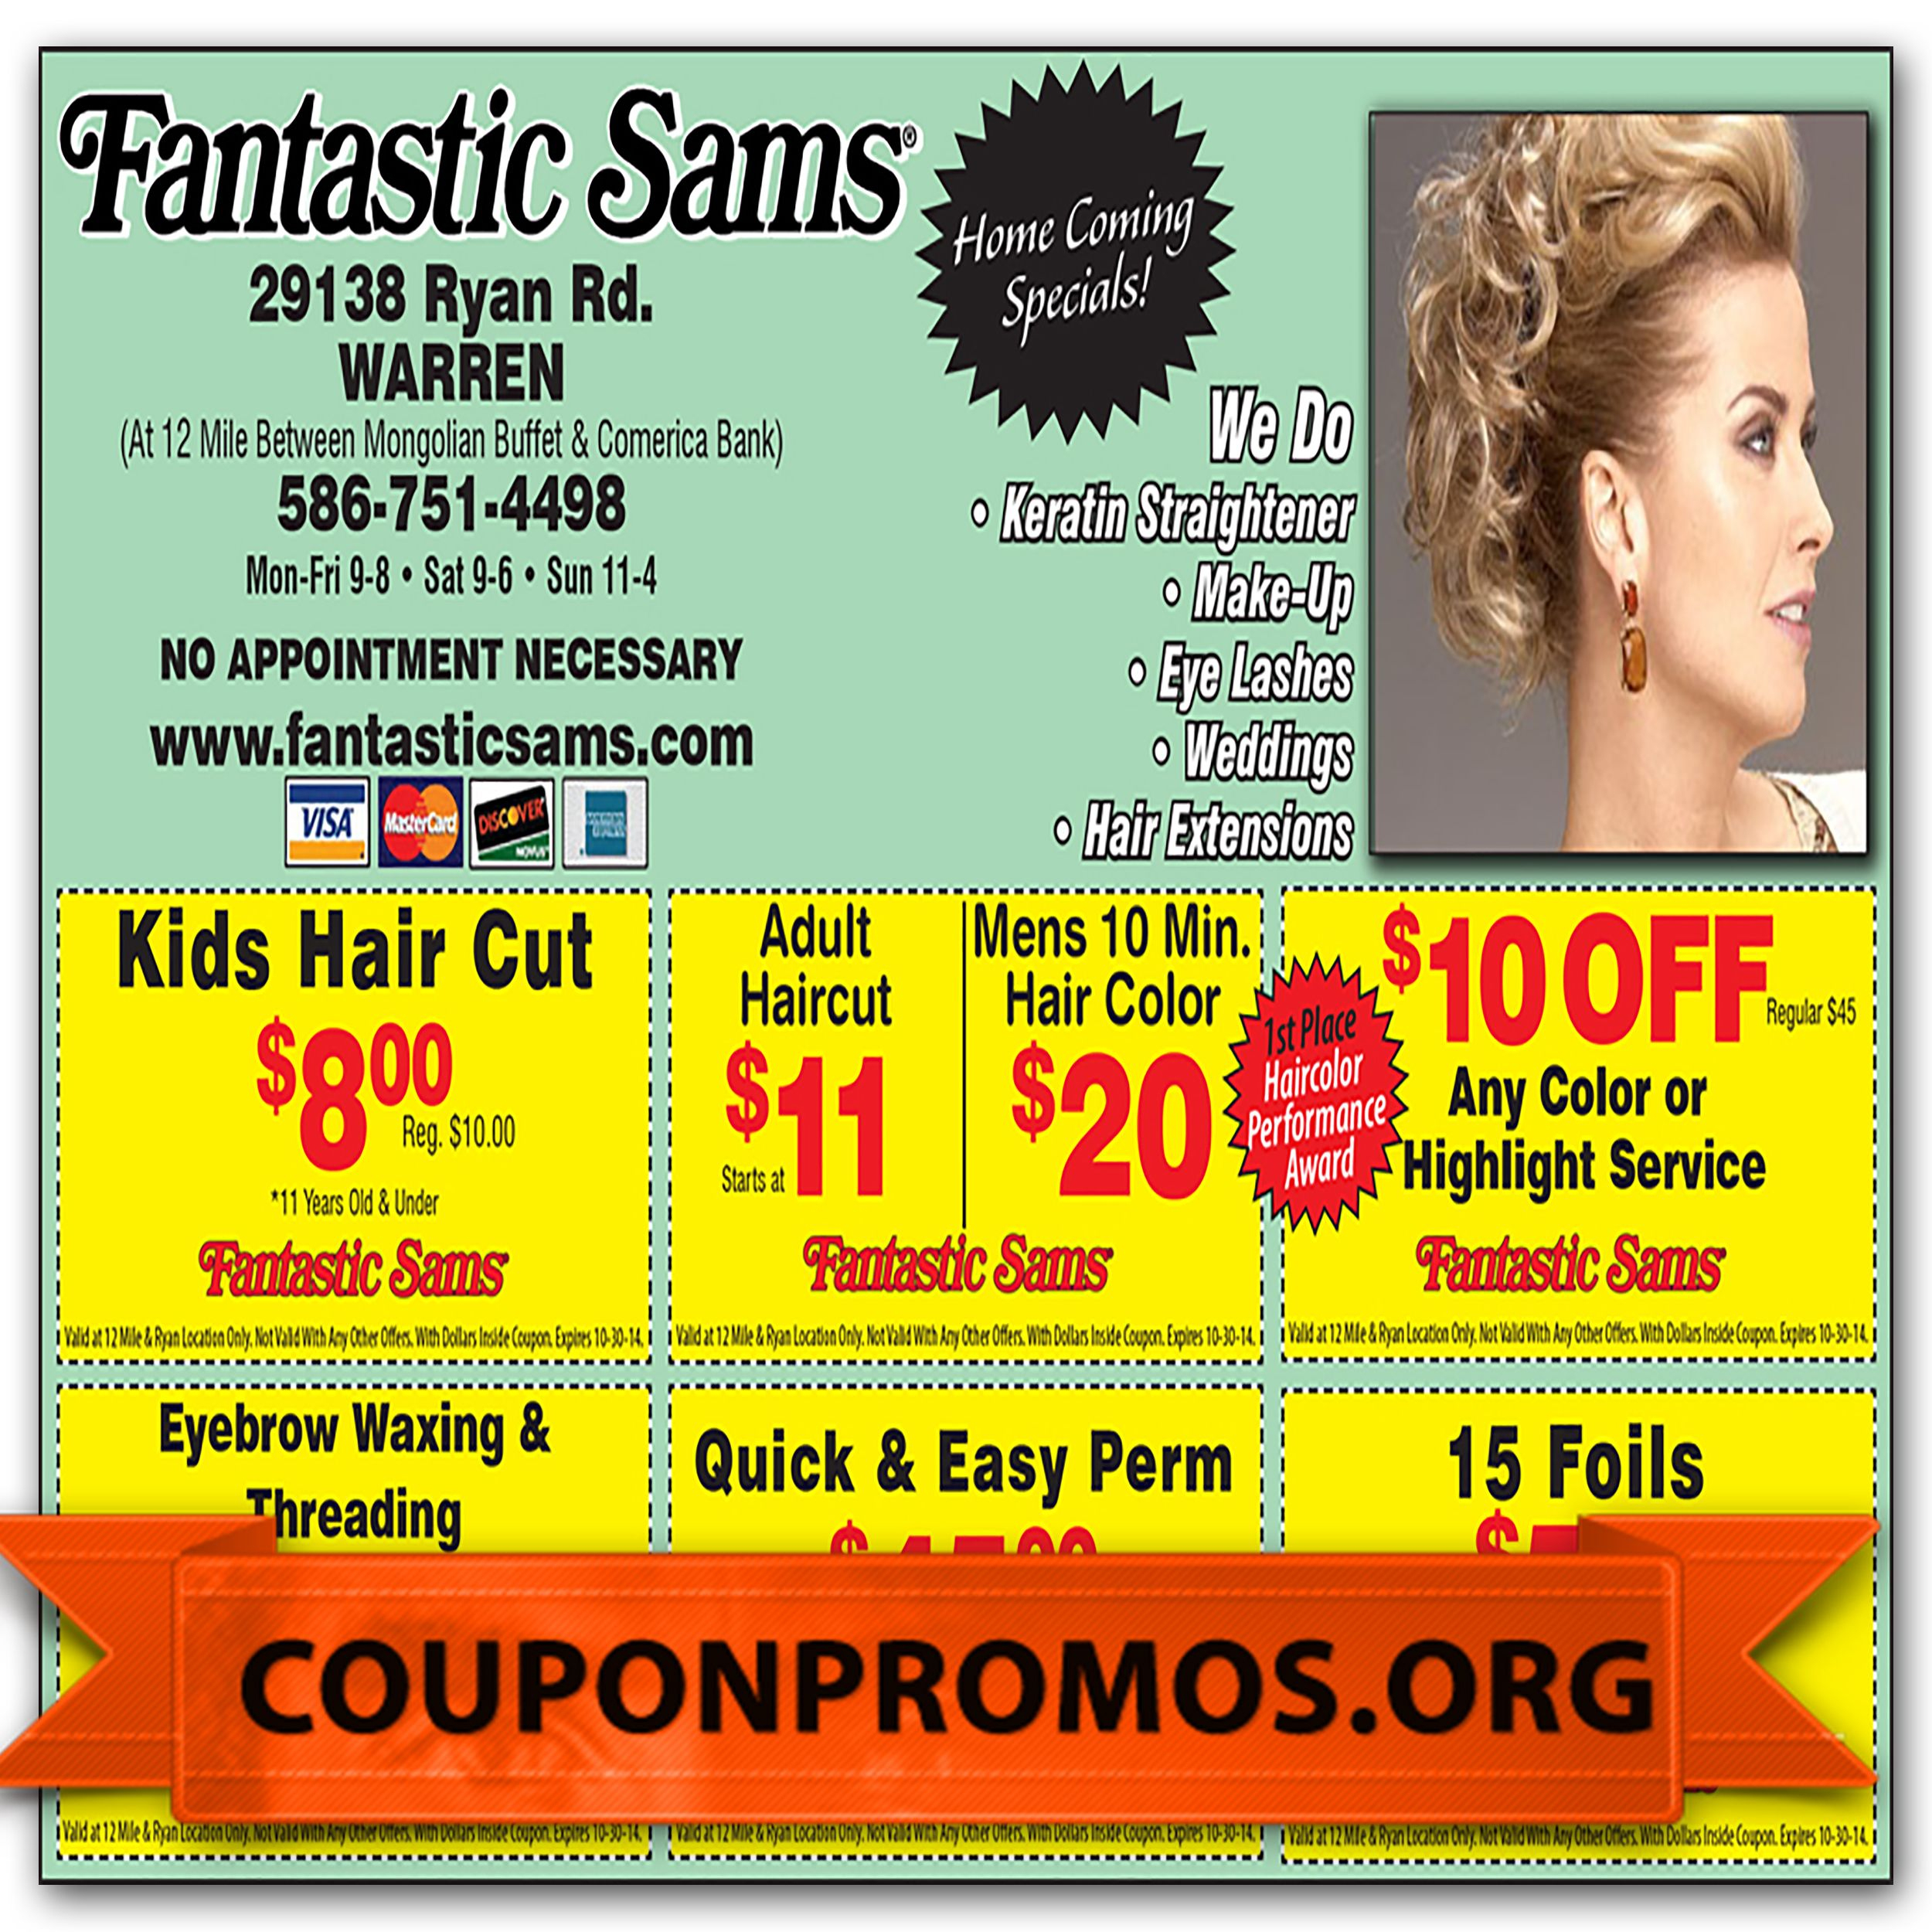 Free Fantastic Sams Discount Coupons Printable For November December - Free Printable Coupons For Fantastic Sams